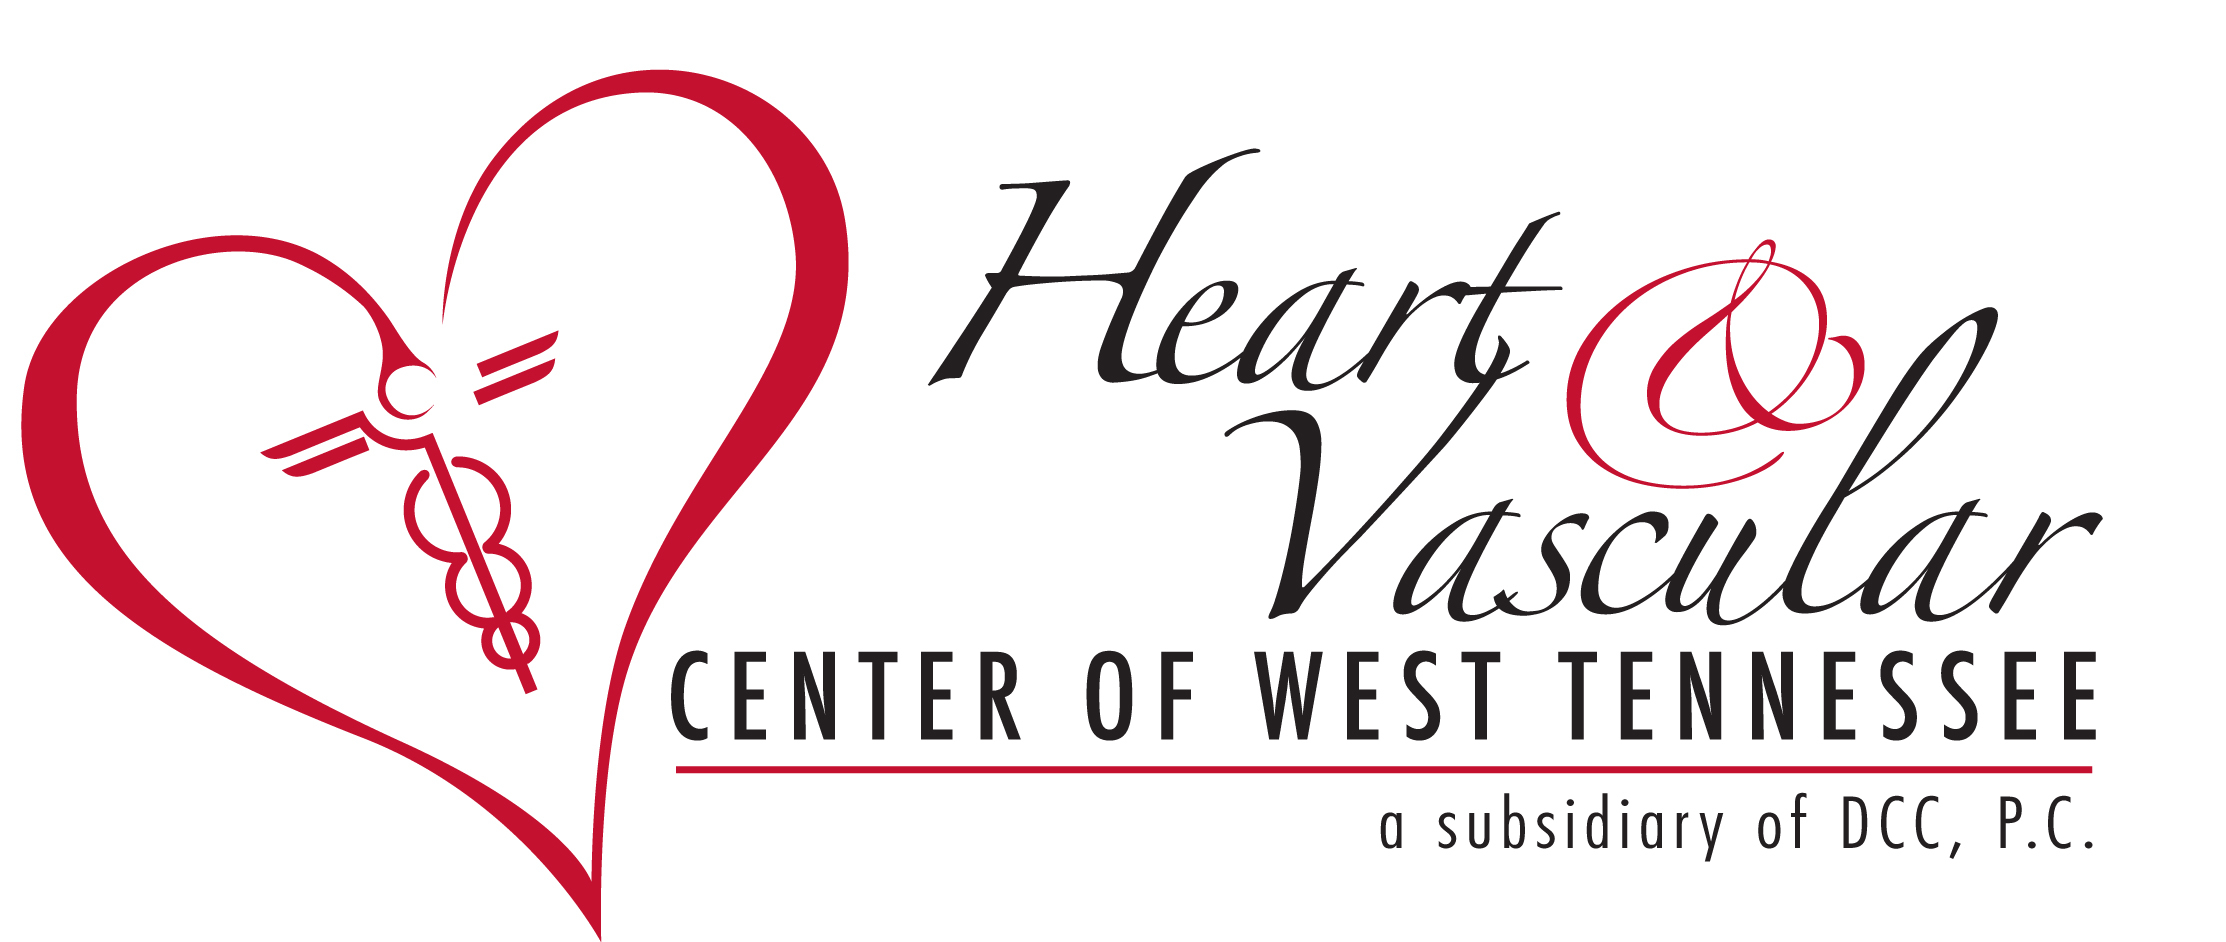 Heart and Vascular Center of West Tennessee